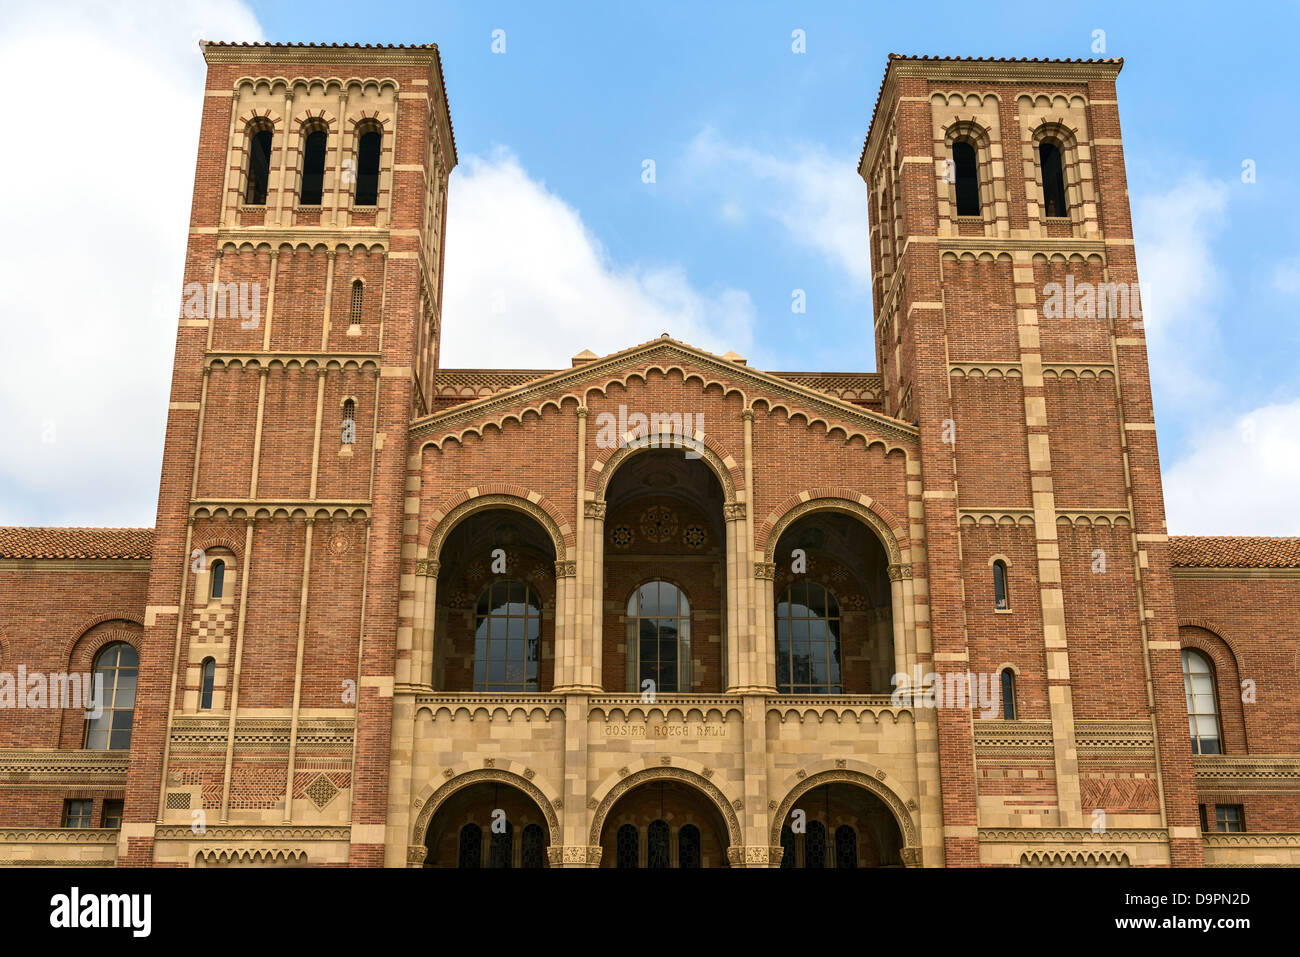 The famous Royce hall of UCLA, the University of California, Los Angeles. - Stock Image